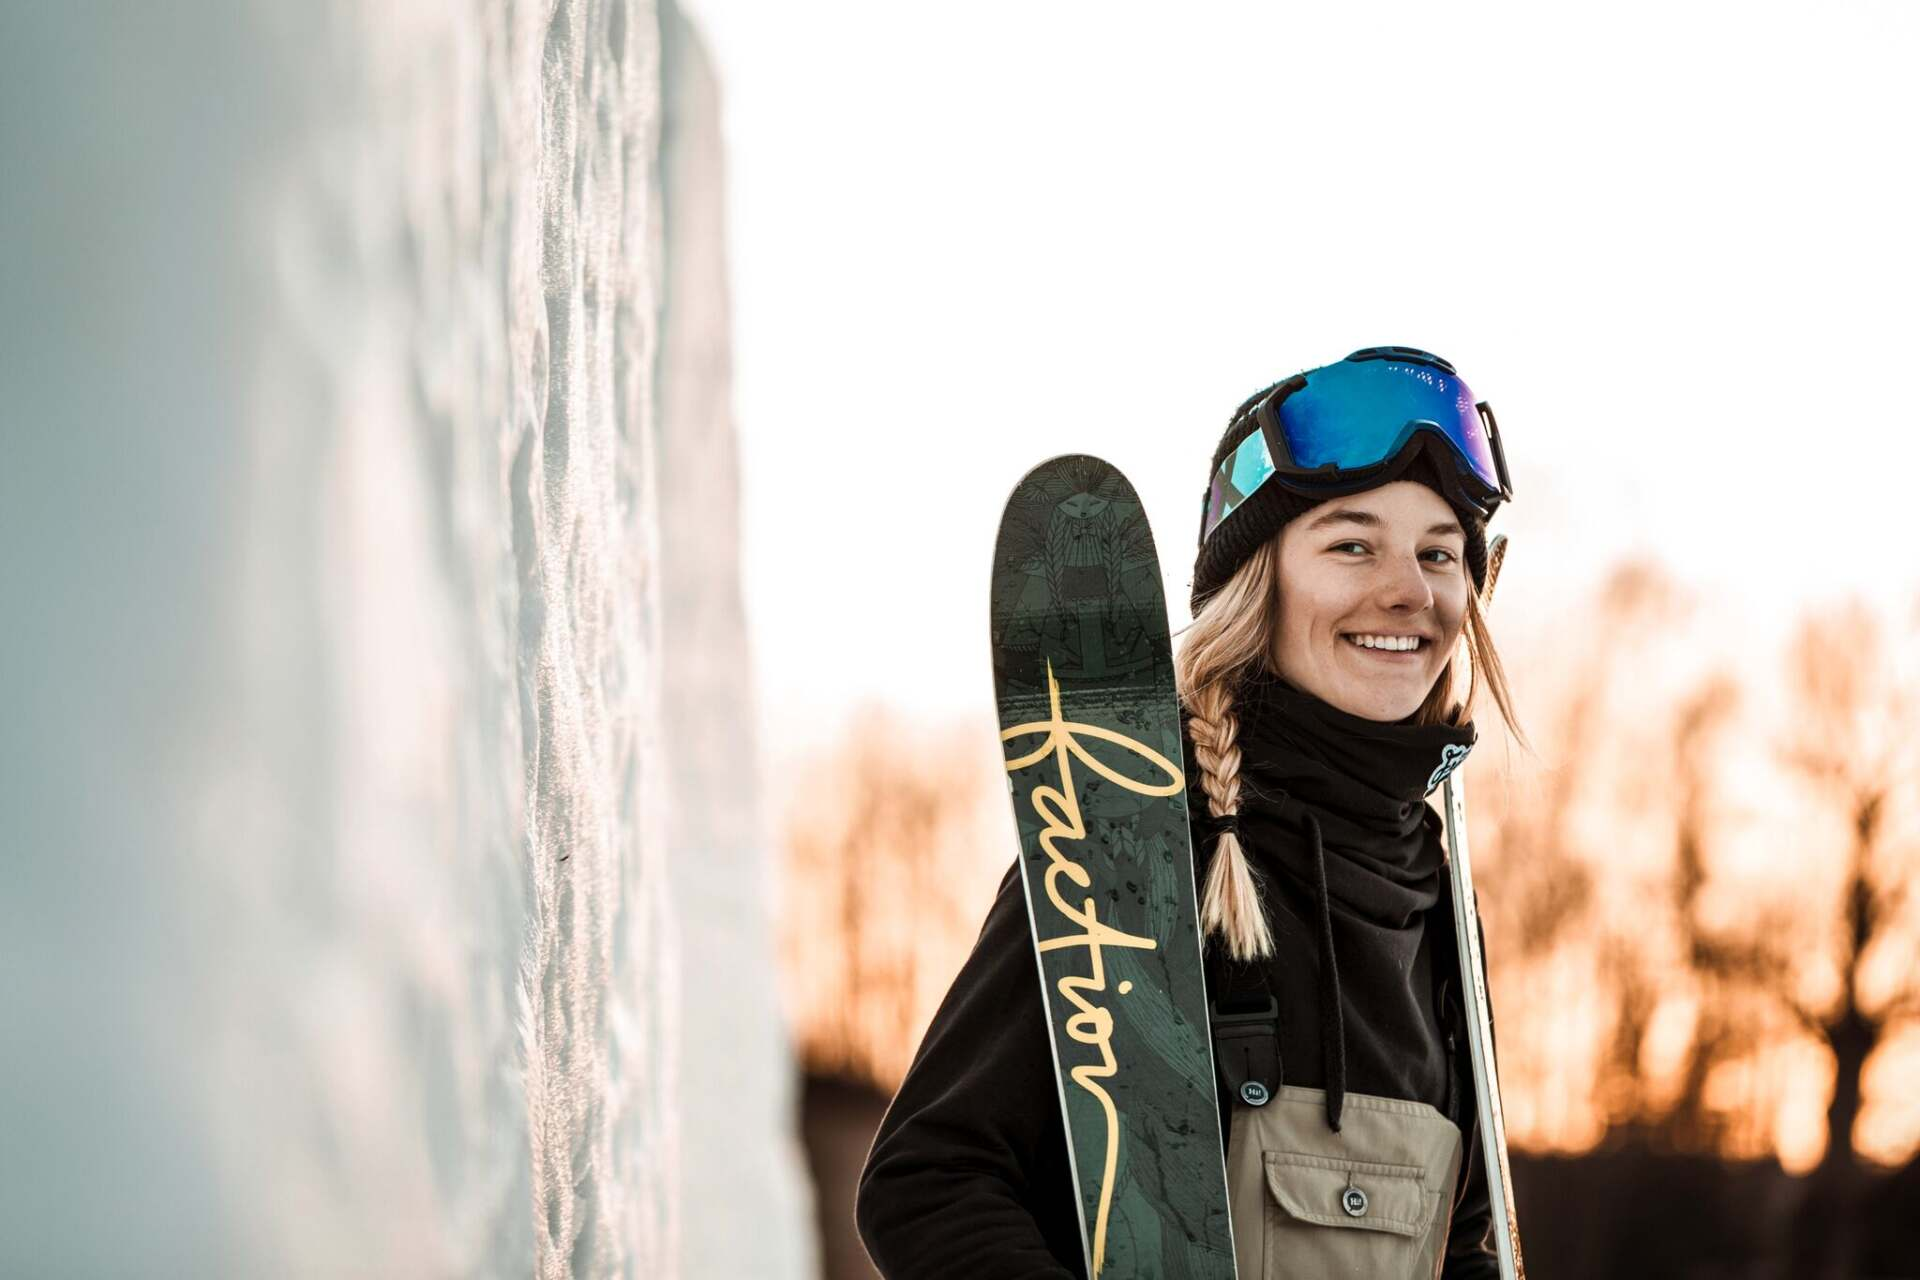 Faction Skis: Bringing The Alps To Life